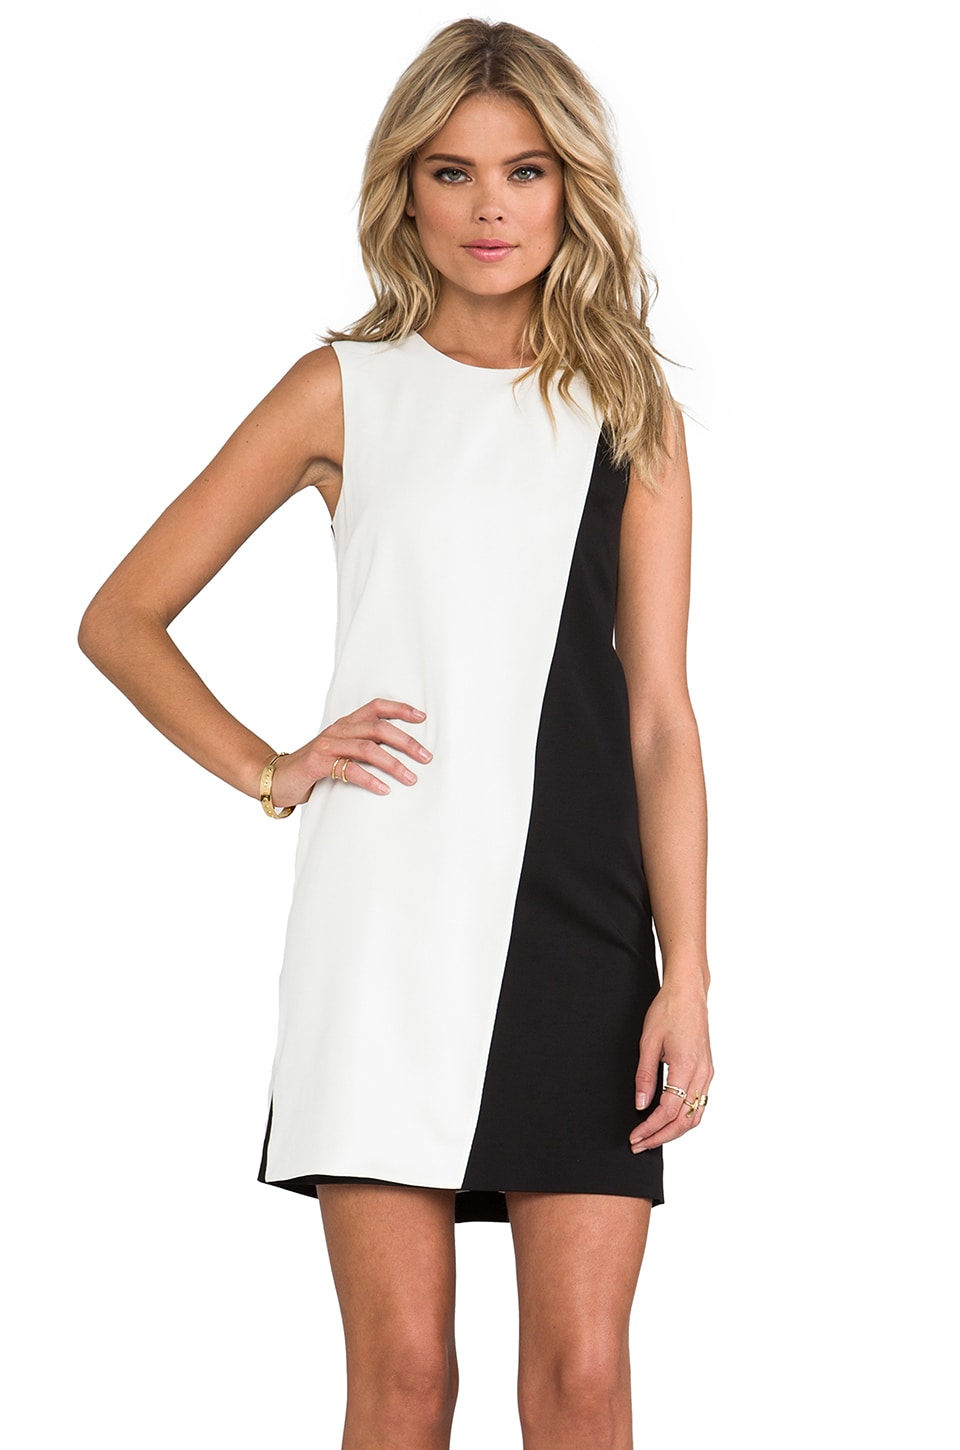 Theory Randla C Dress in Black/White